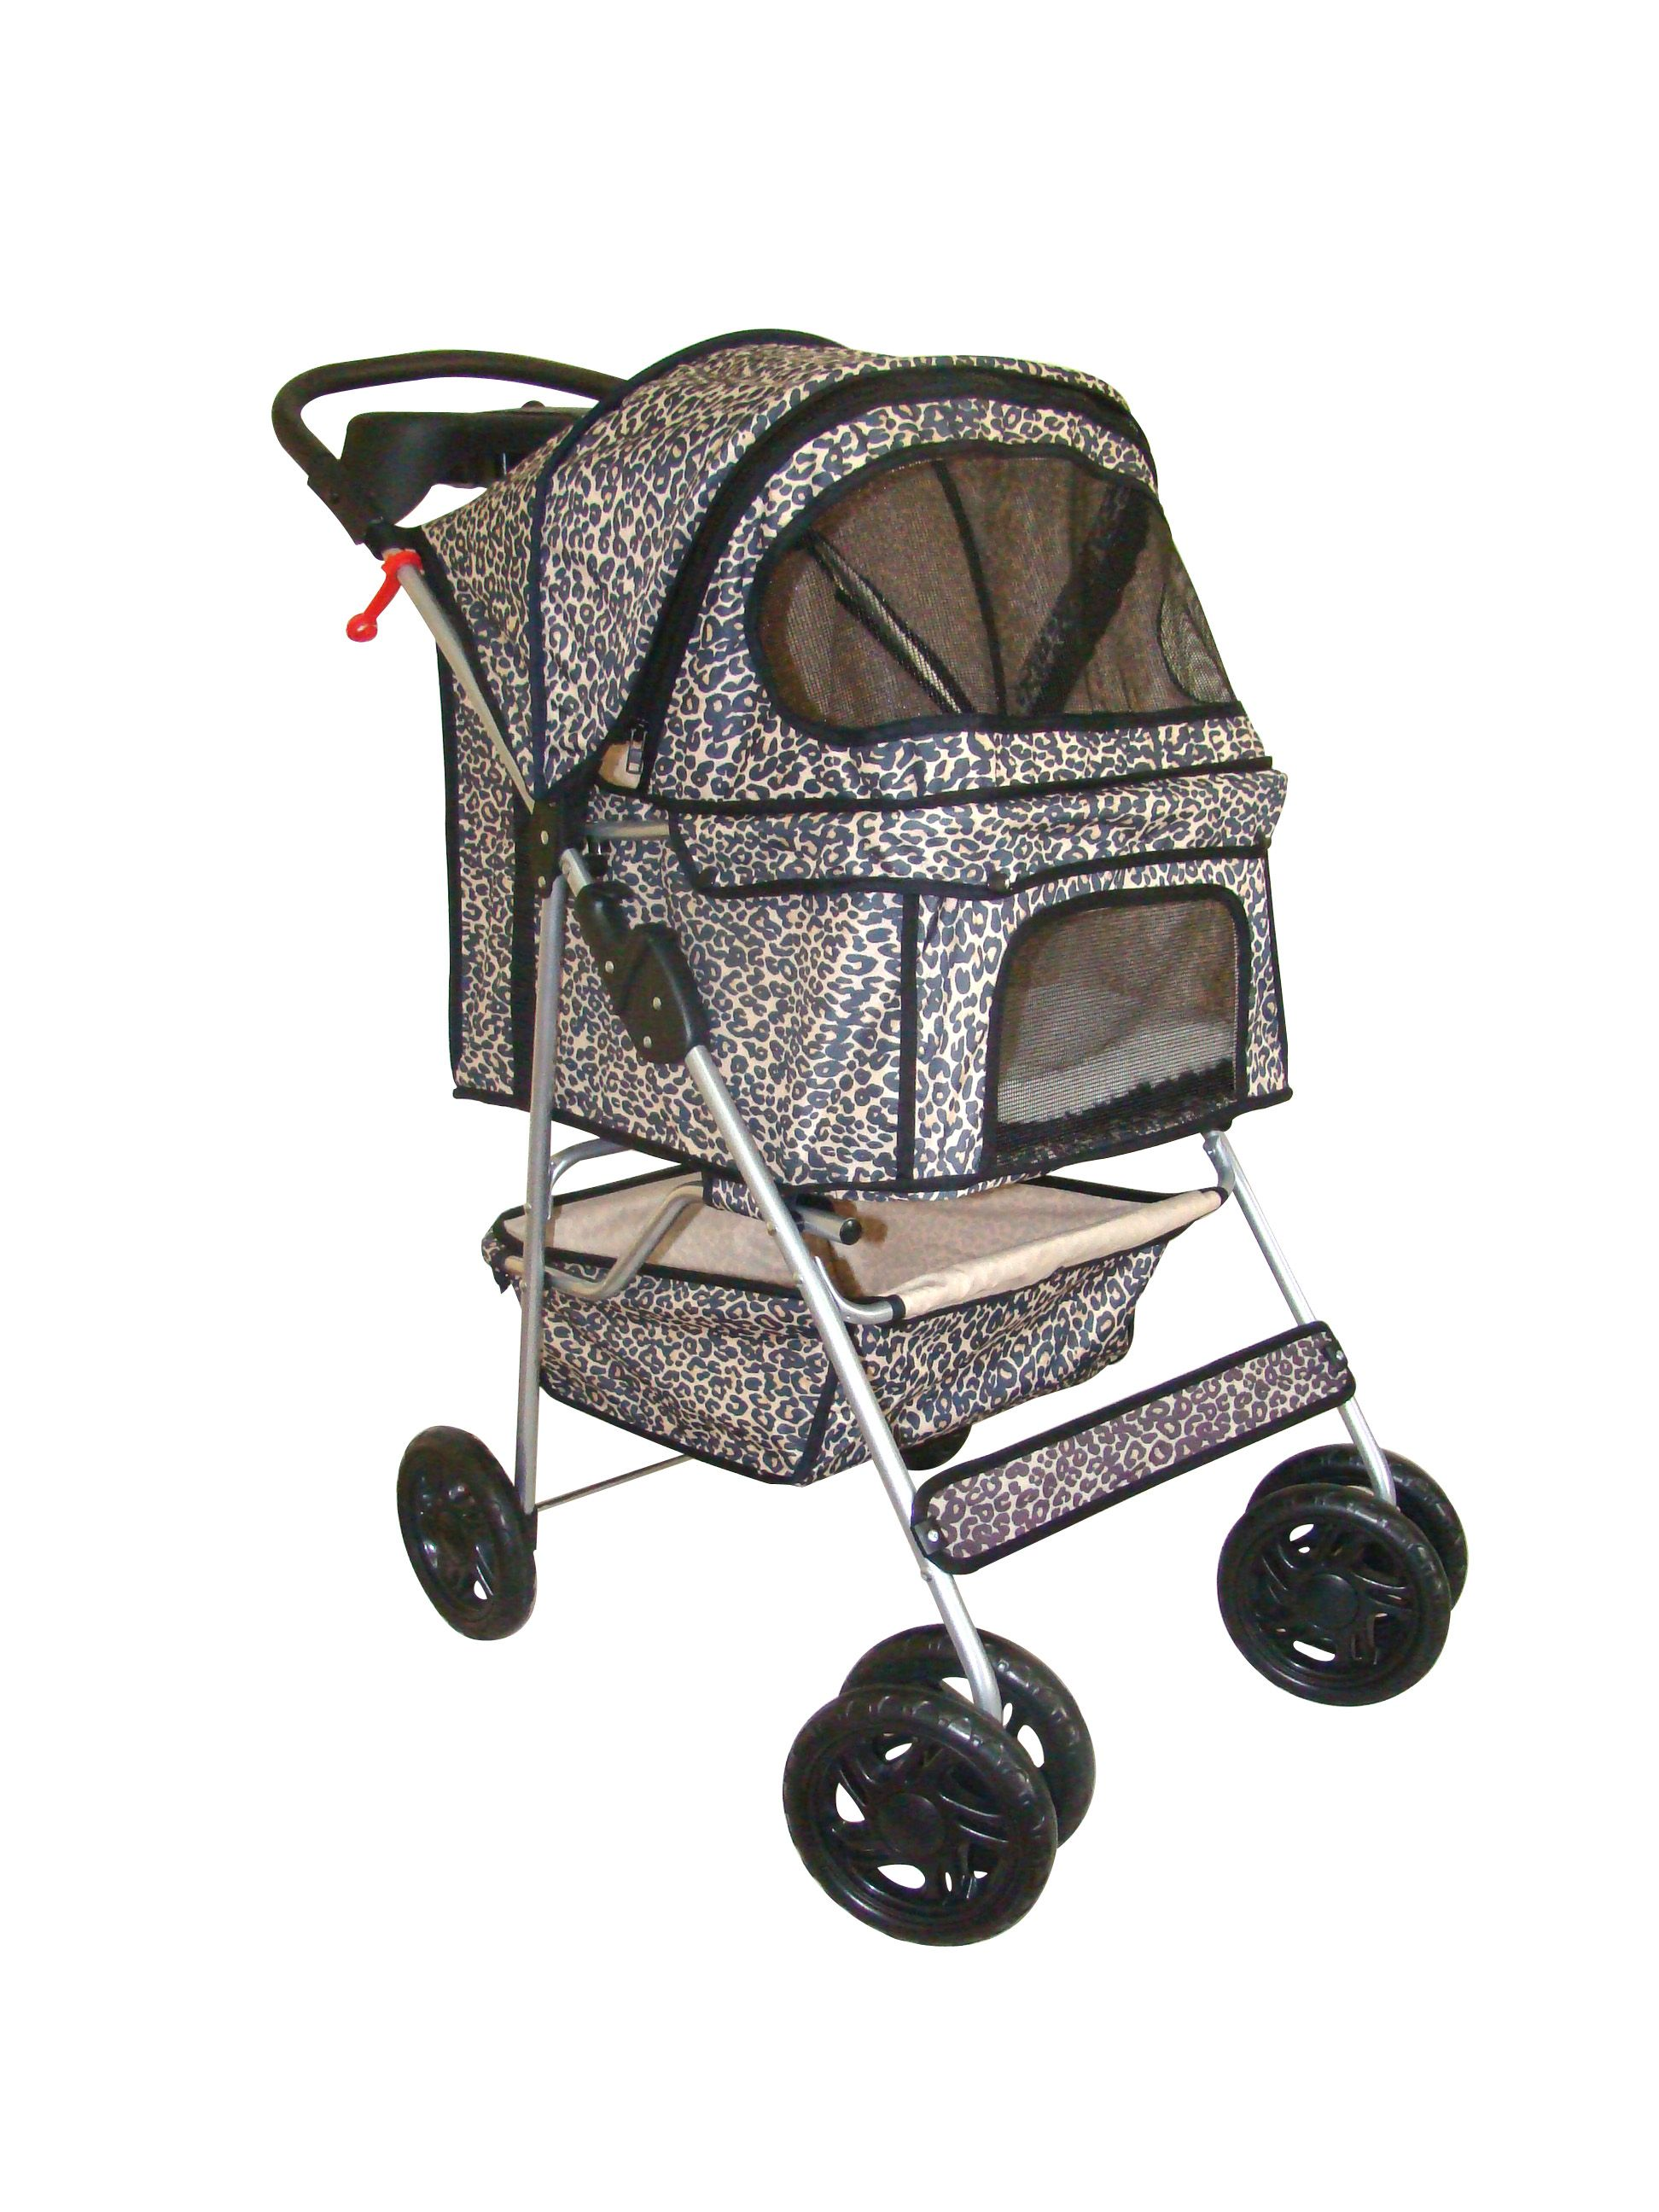 Leopard Print 4 Wheels Dog Stroller Bestpet Cat